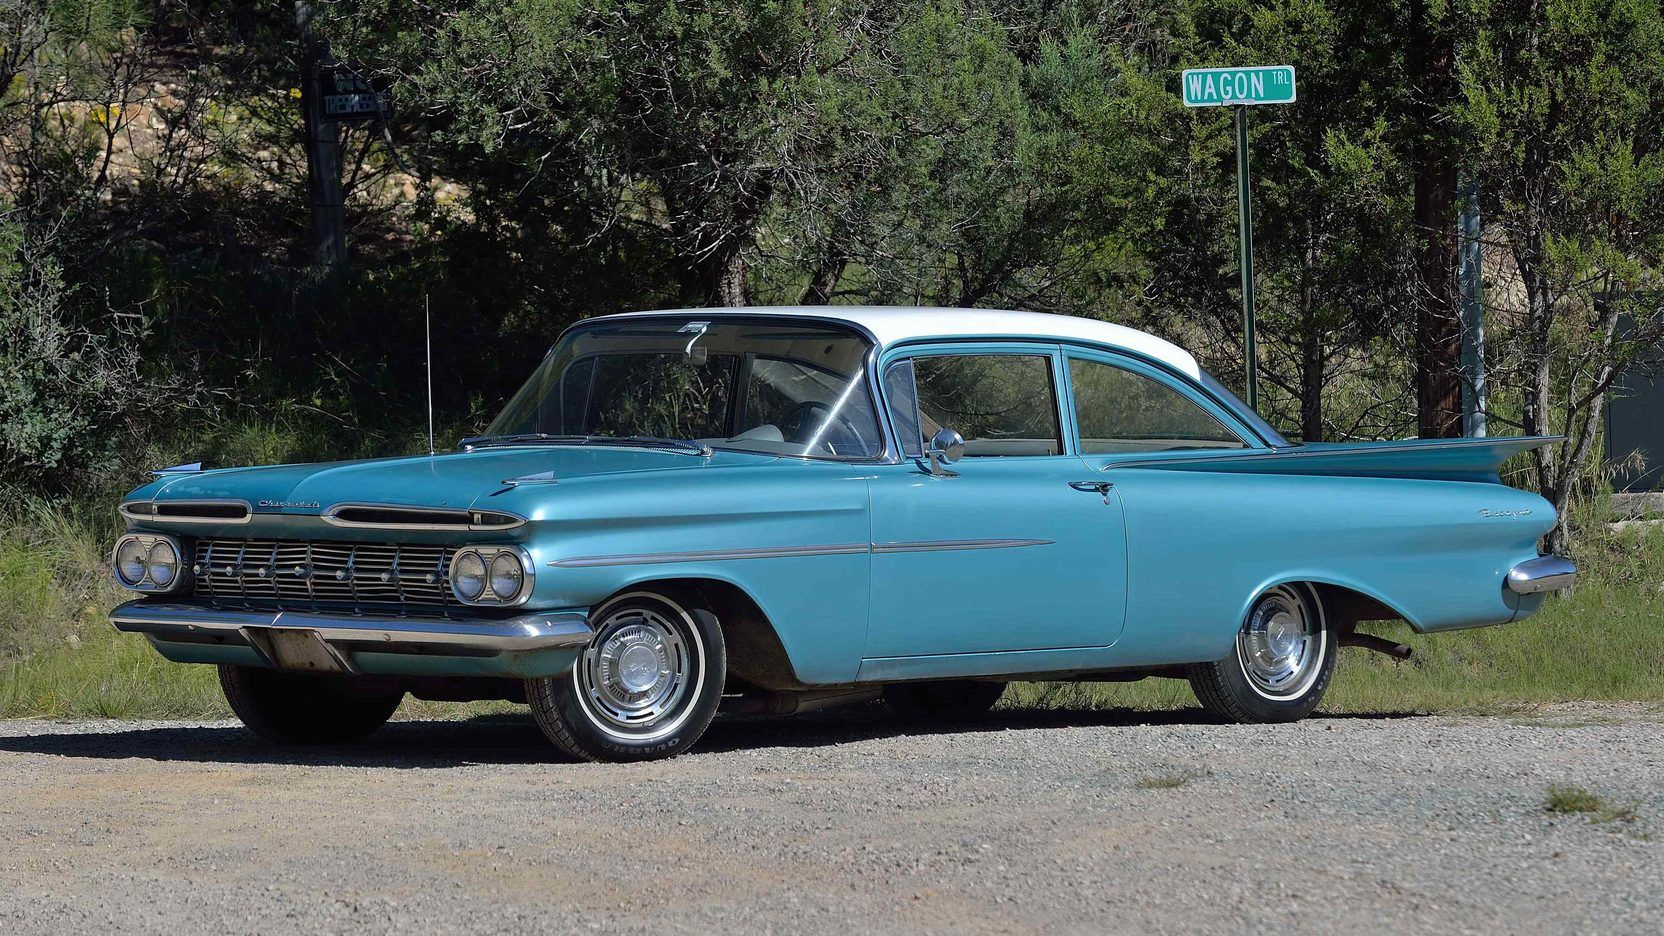 All Chevy 1960 chevrolet biscayne 2 door : 1959 Chevrolet Biscayne 300 HP Police Pursuit For Sale | Cool ...